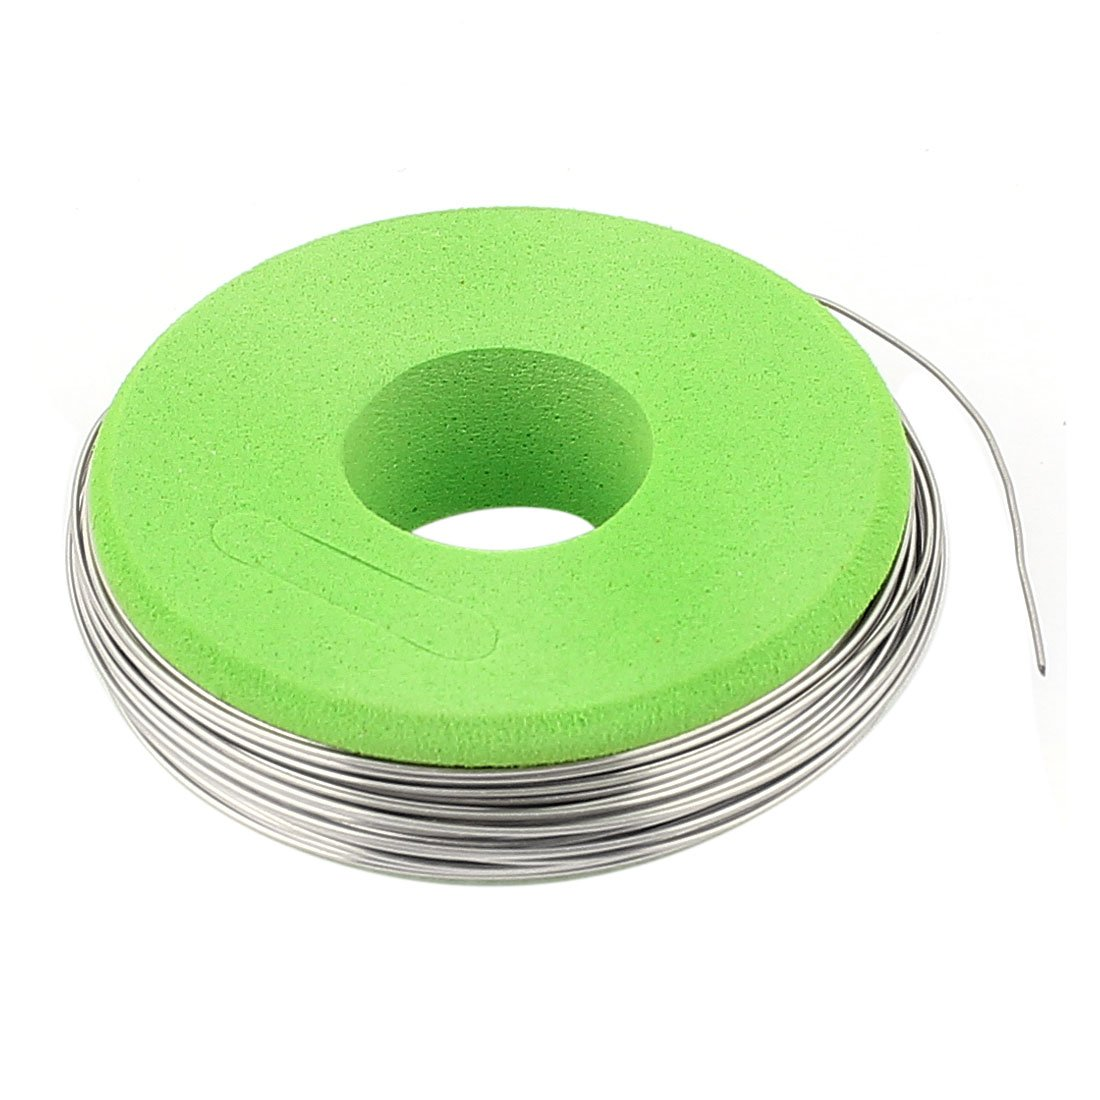 uxcell Nichrome 80 Round Wire 0.5mm 24 AWG 7.5M Roll 5.551Ohm/m Resistance